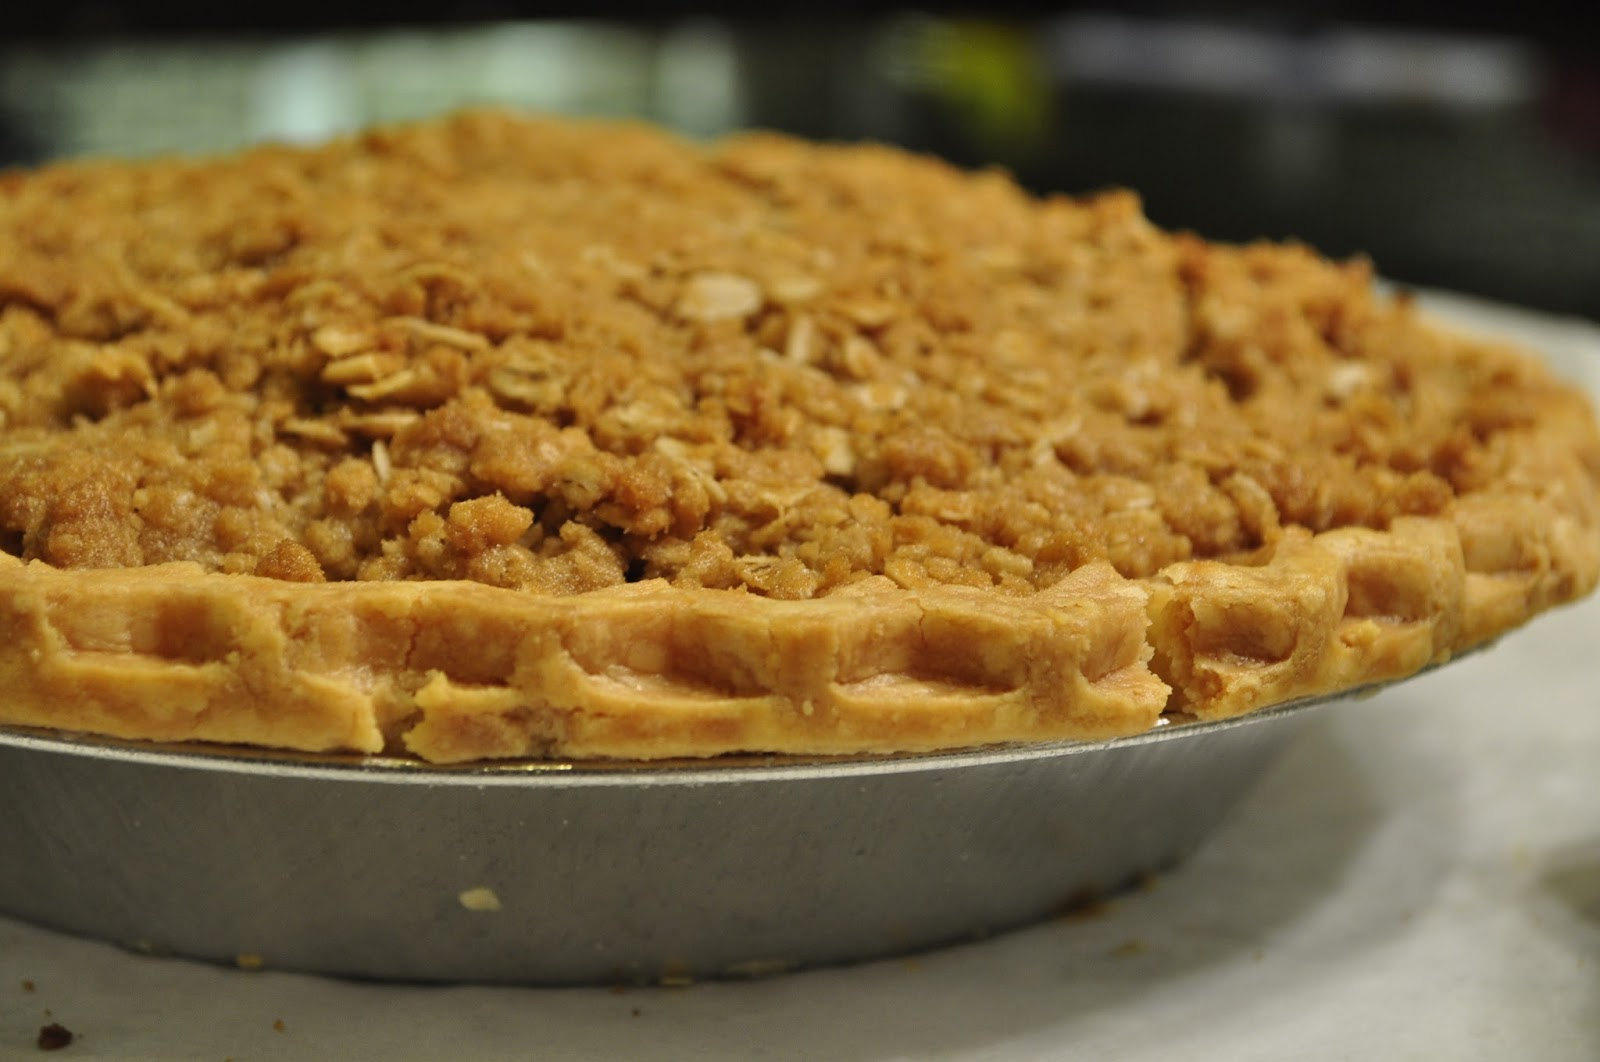 ... Amazing Meals: All Recipes: Dutch Apple Pie with Oatmeal Streusel